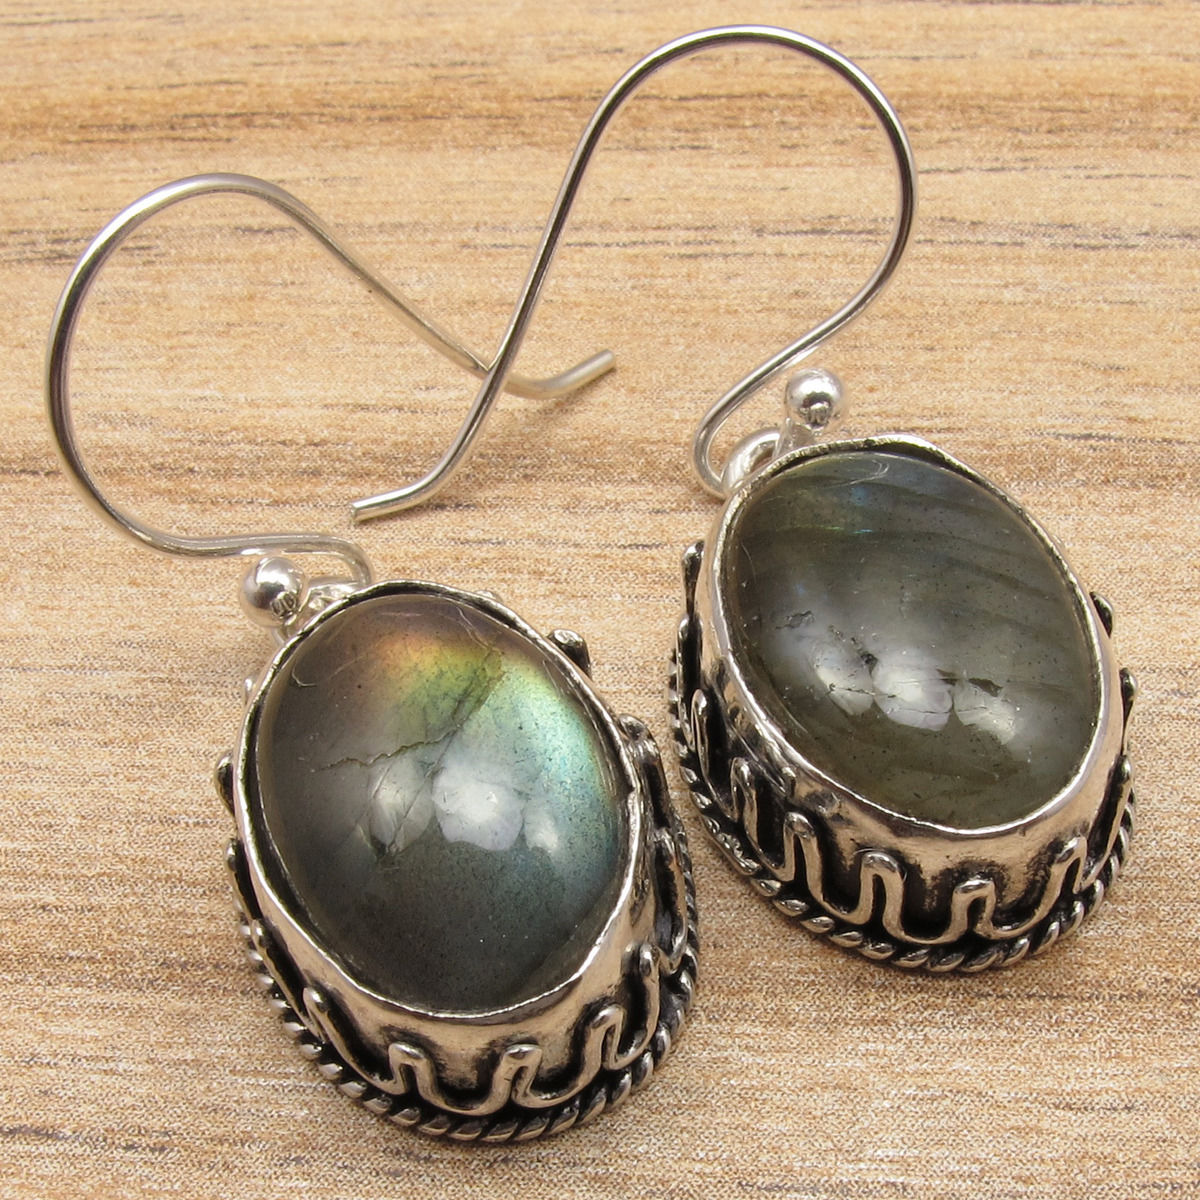 NEW EARRINGS Blue Fired LABRADORITE Gem Stone Silver Plated Jaipur Jewelry